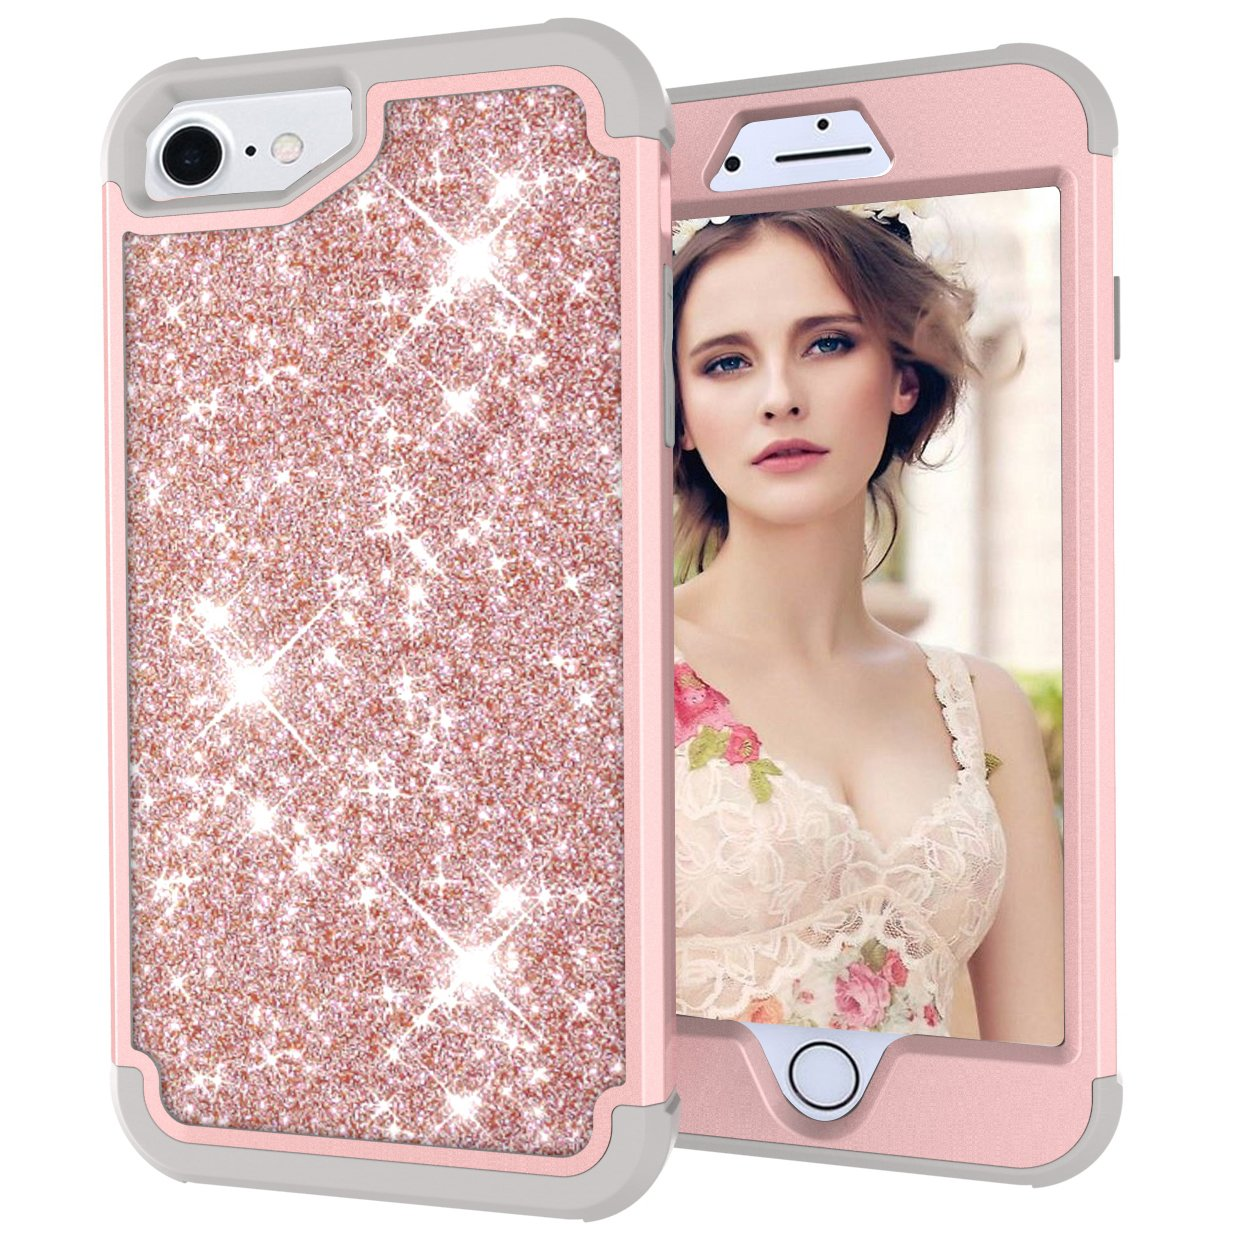 iPhone 8/iPhone 7/iPhone 6S/iPhone 6 Case,Yoomer Fashion Shining Bling Diamond Rhinestone Luxury Glitter Sparkle Three Layer Hybrid Sturdy Armor Shockproof Protective Cover for iPhone 8/7/6S/6 4.7""